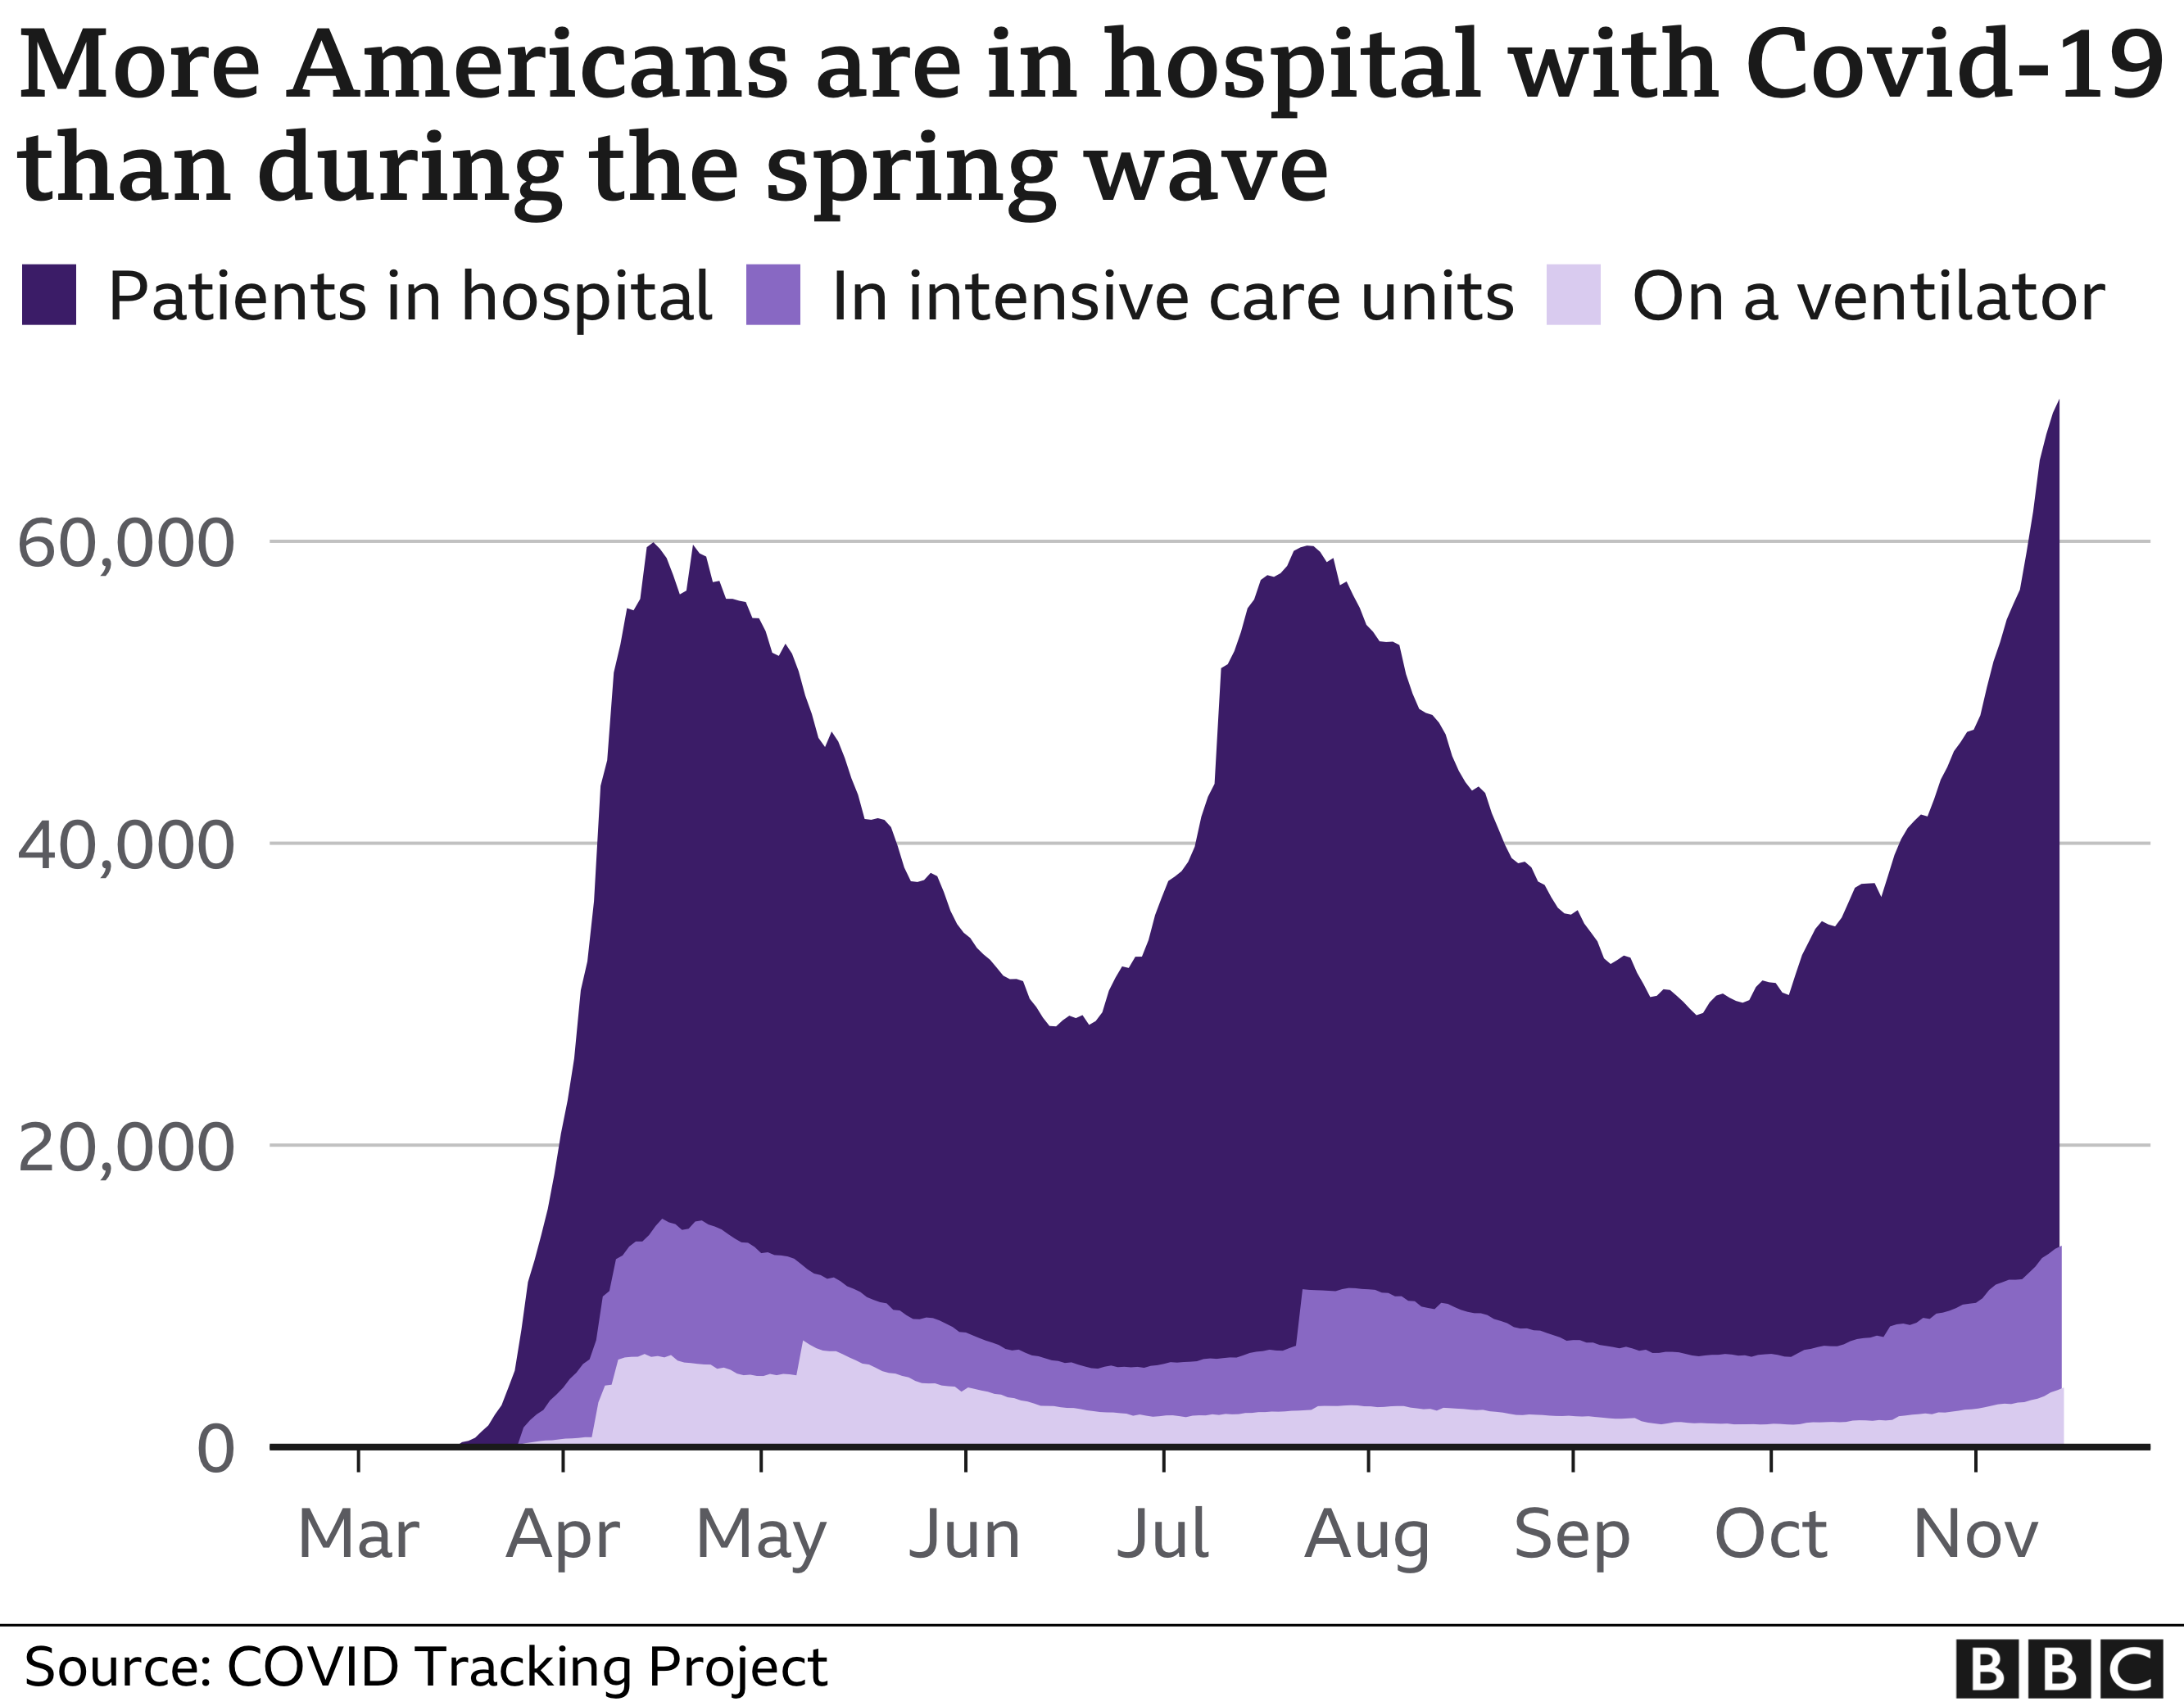 Chart showing the number of Covid-19 patients in US hospitals since the start of the pandemic